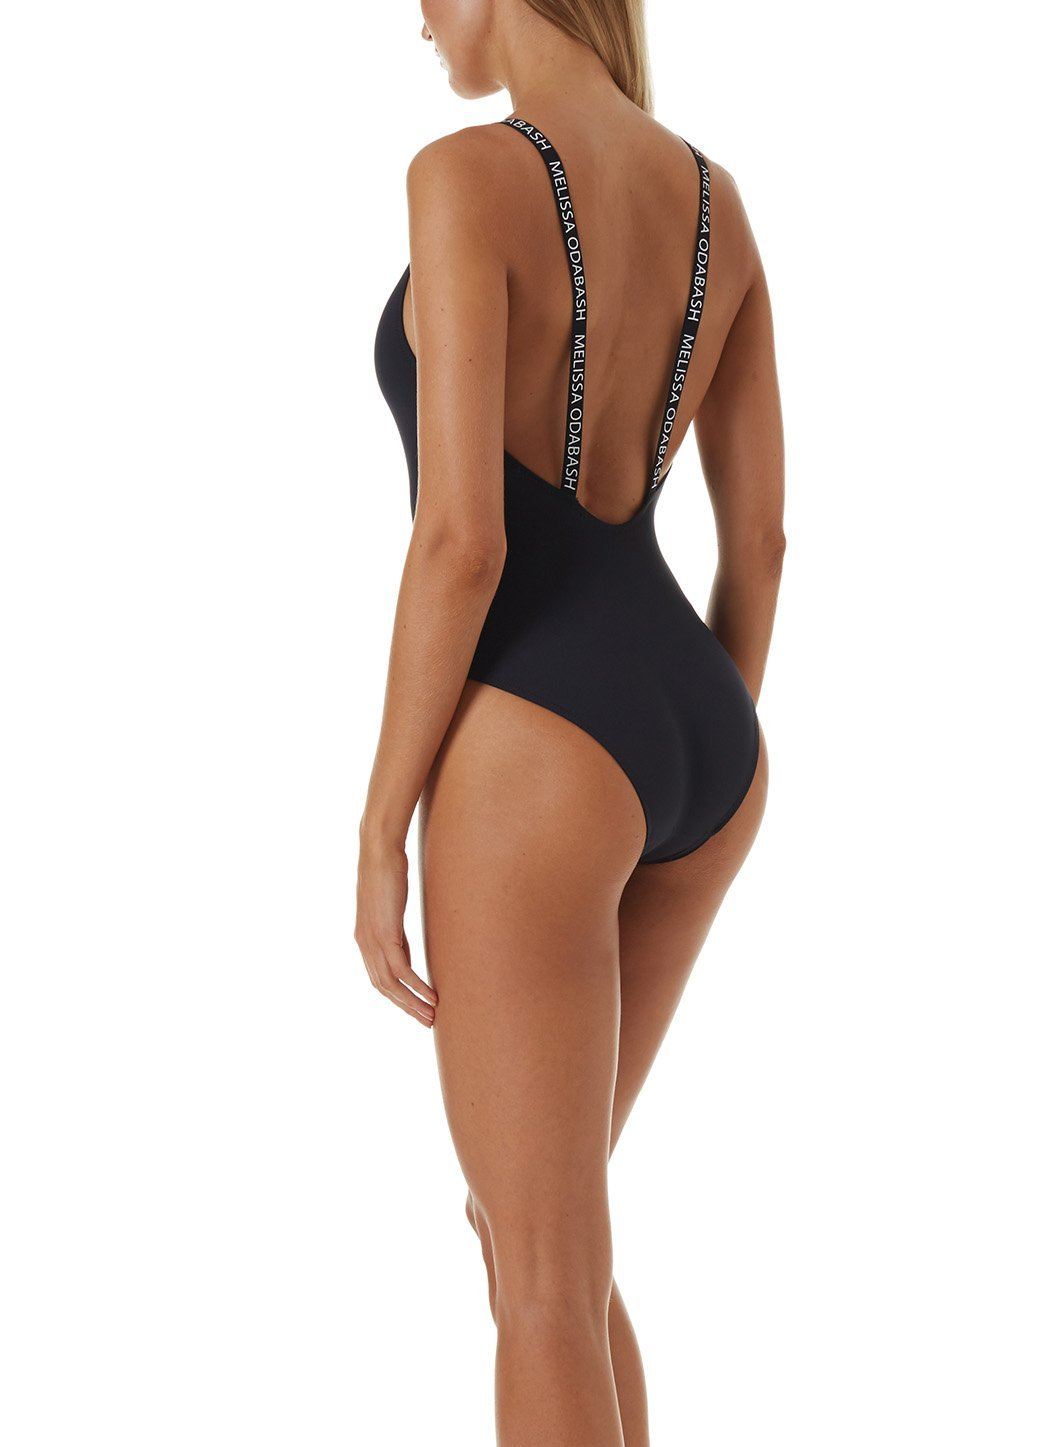 italy black swimsuit